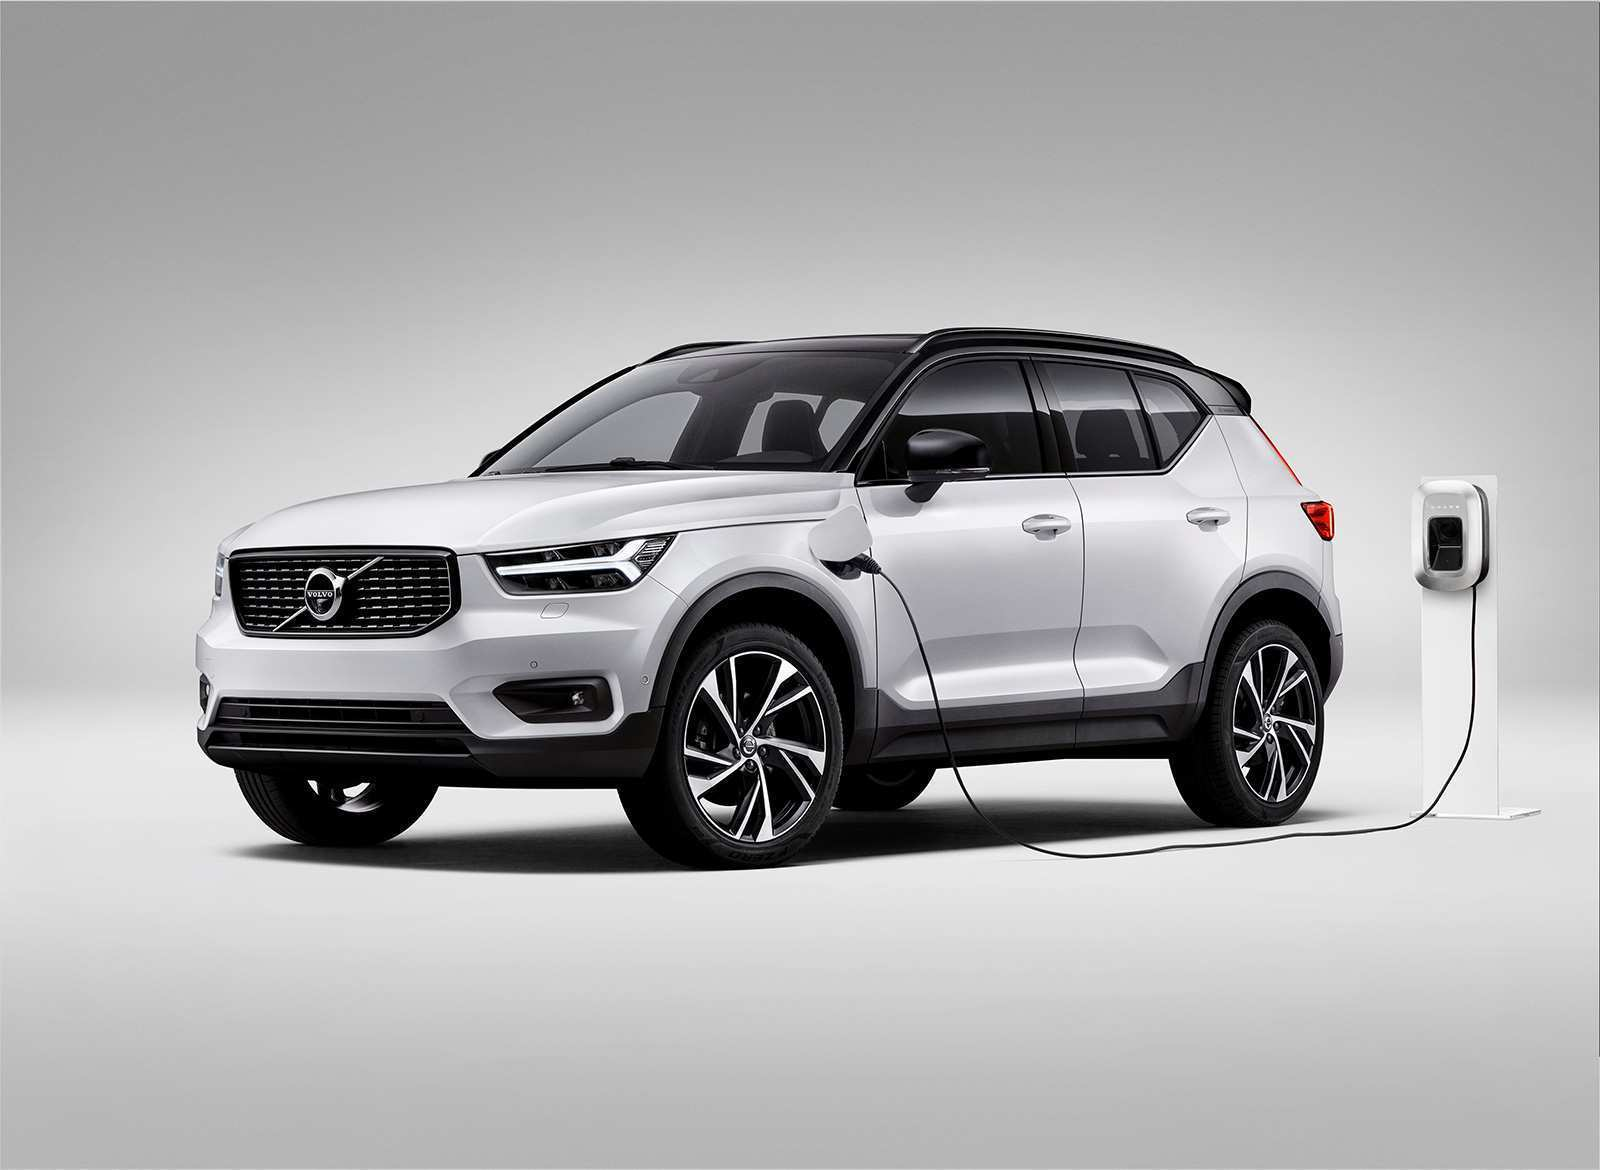 89 All New 2019 Volvo Hybrid Suv Prices with 2019 Volvo Hybrid Suv